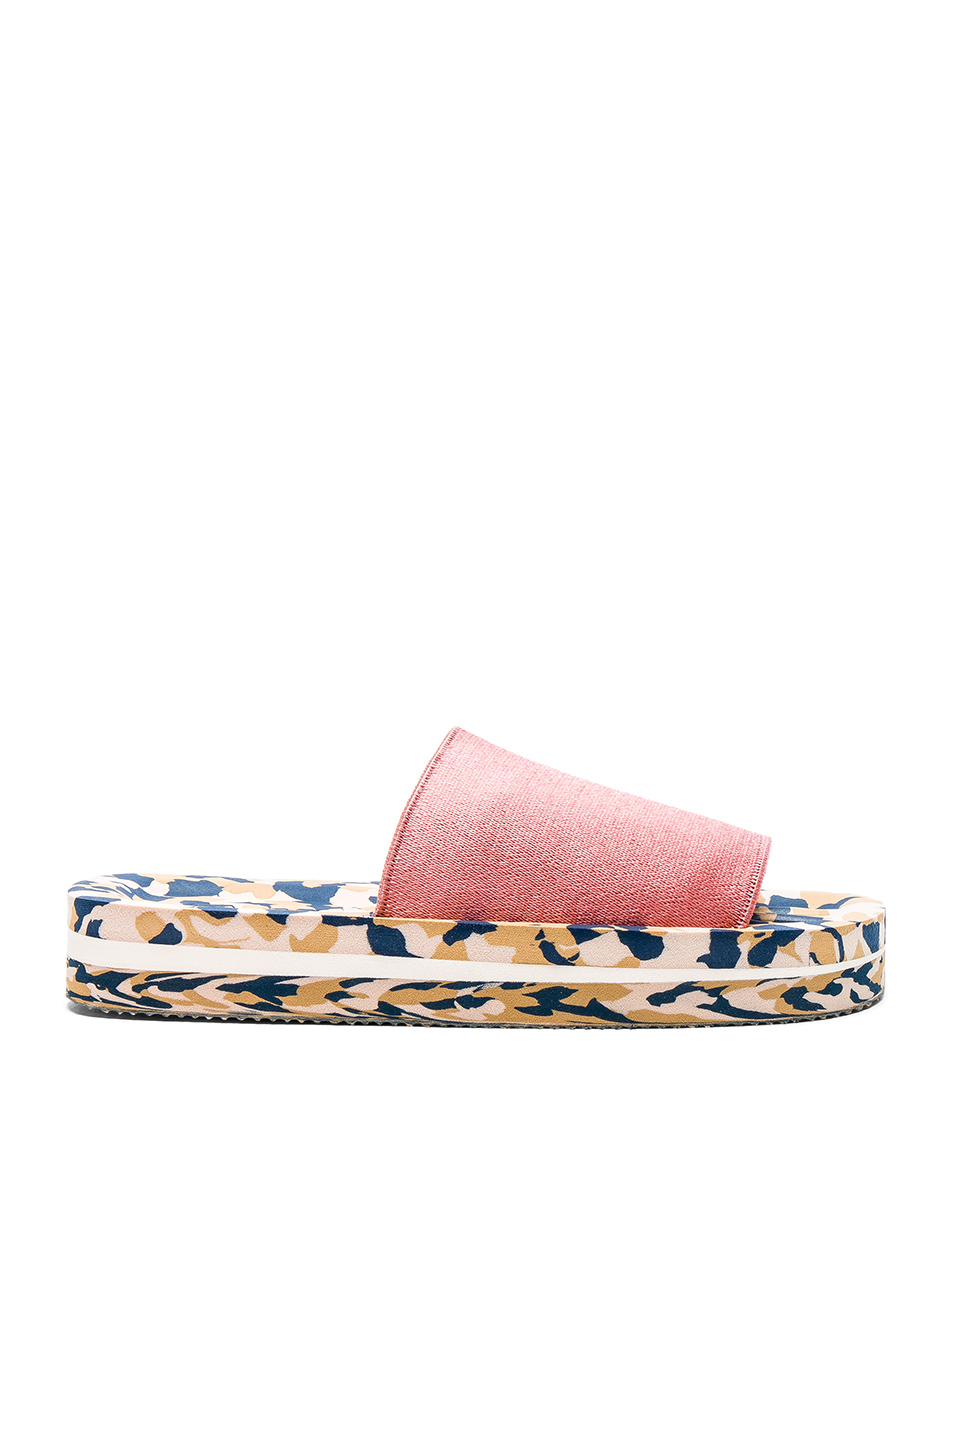 Acne Studios Elastic Tania Slides in Pink,Abstract,Neutrals